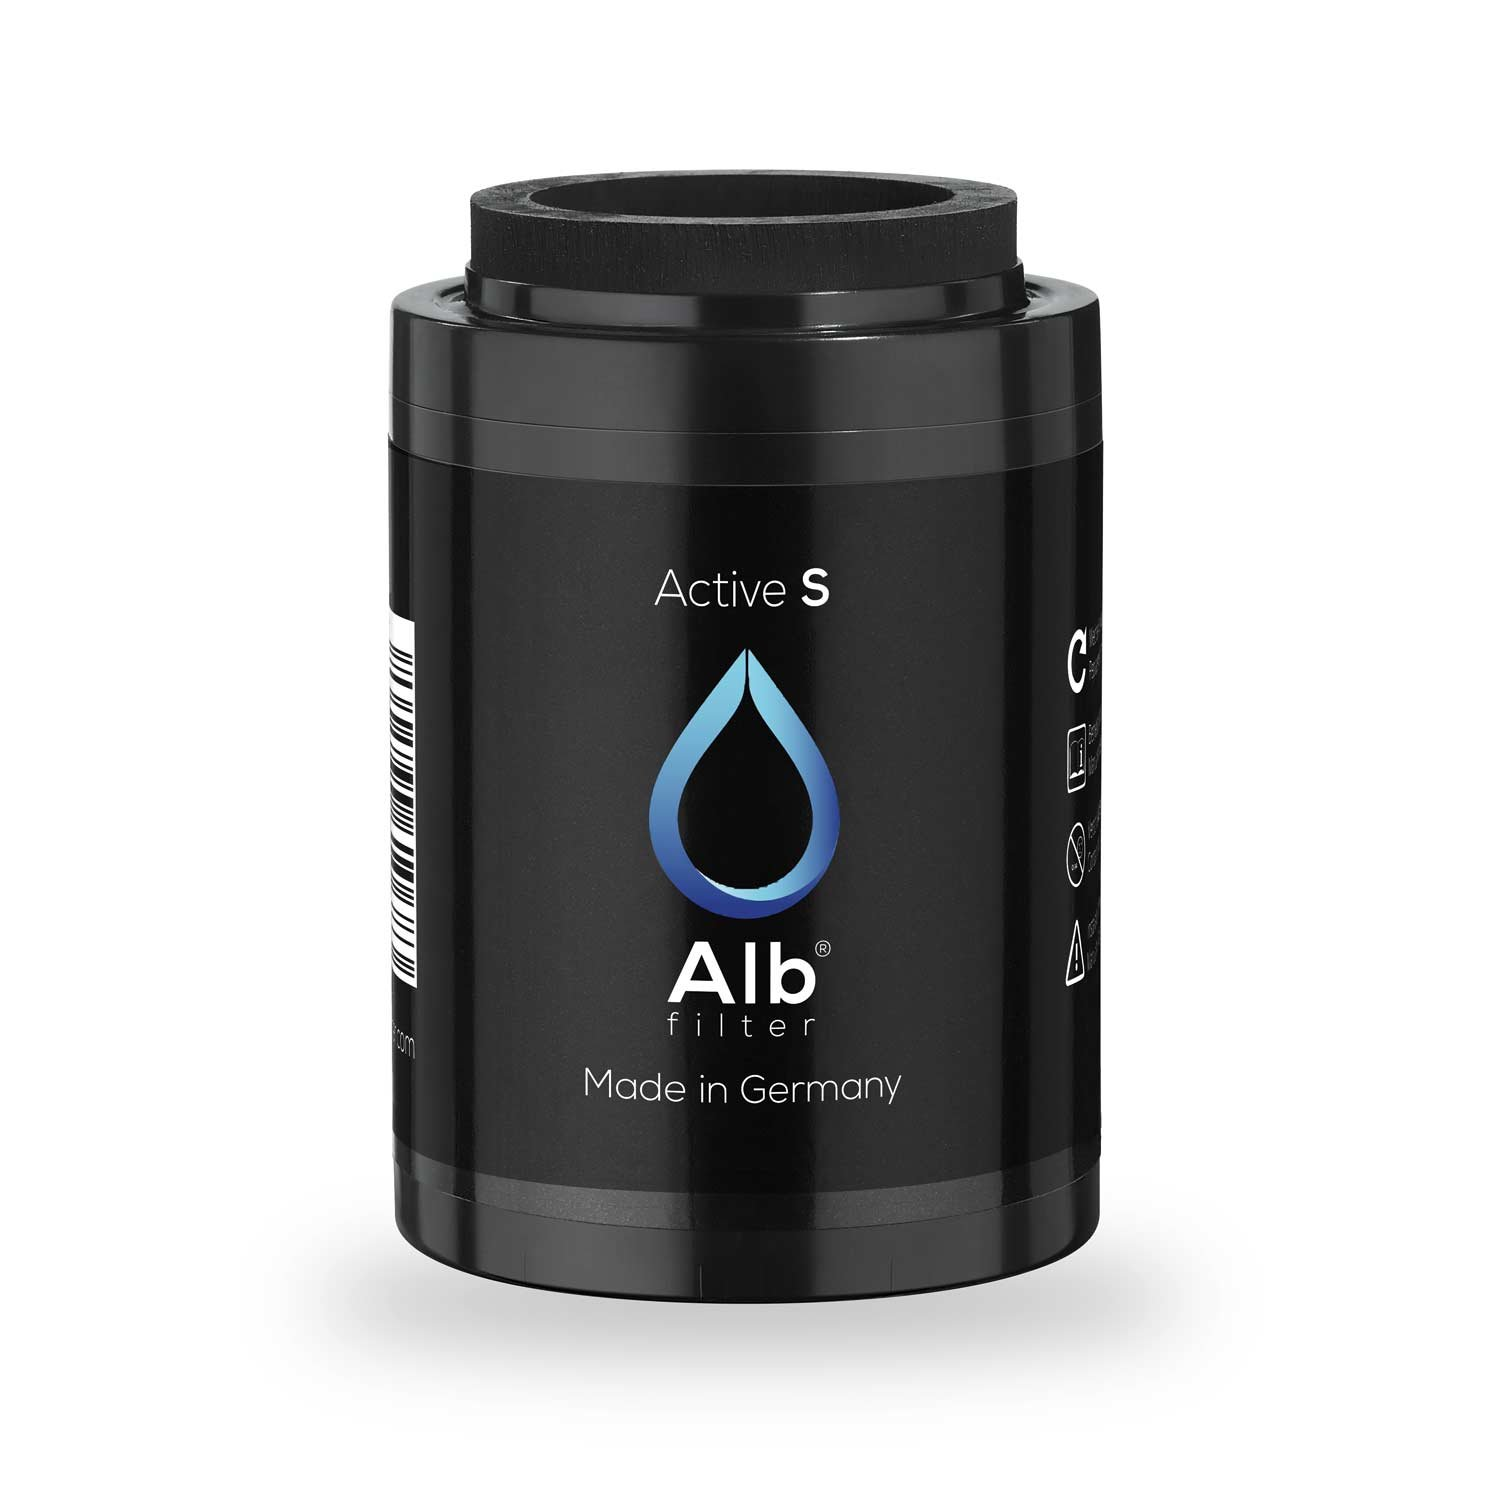 ALB Filter® Active S Drinking Water Filter Replacement Cartridge Reduces contaminants. Odour Free Flavour and Colour In Tap Water Made in Germany